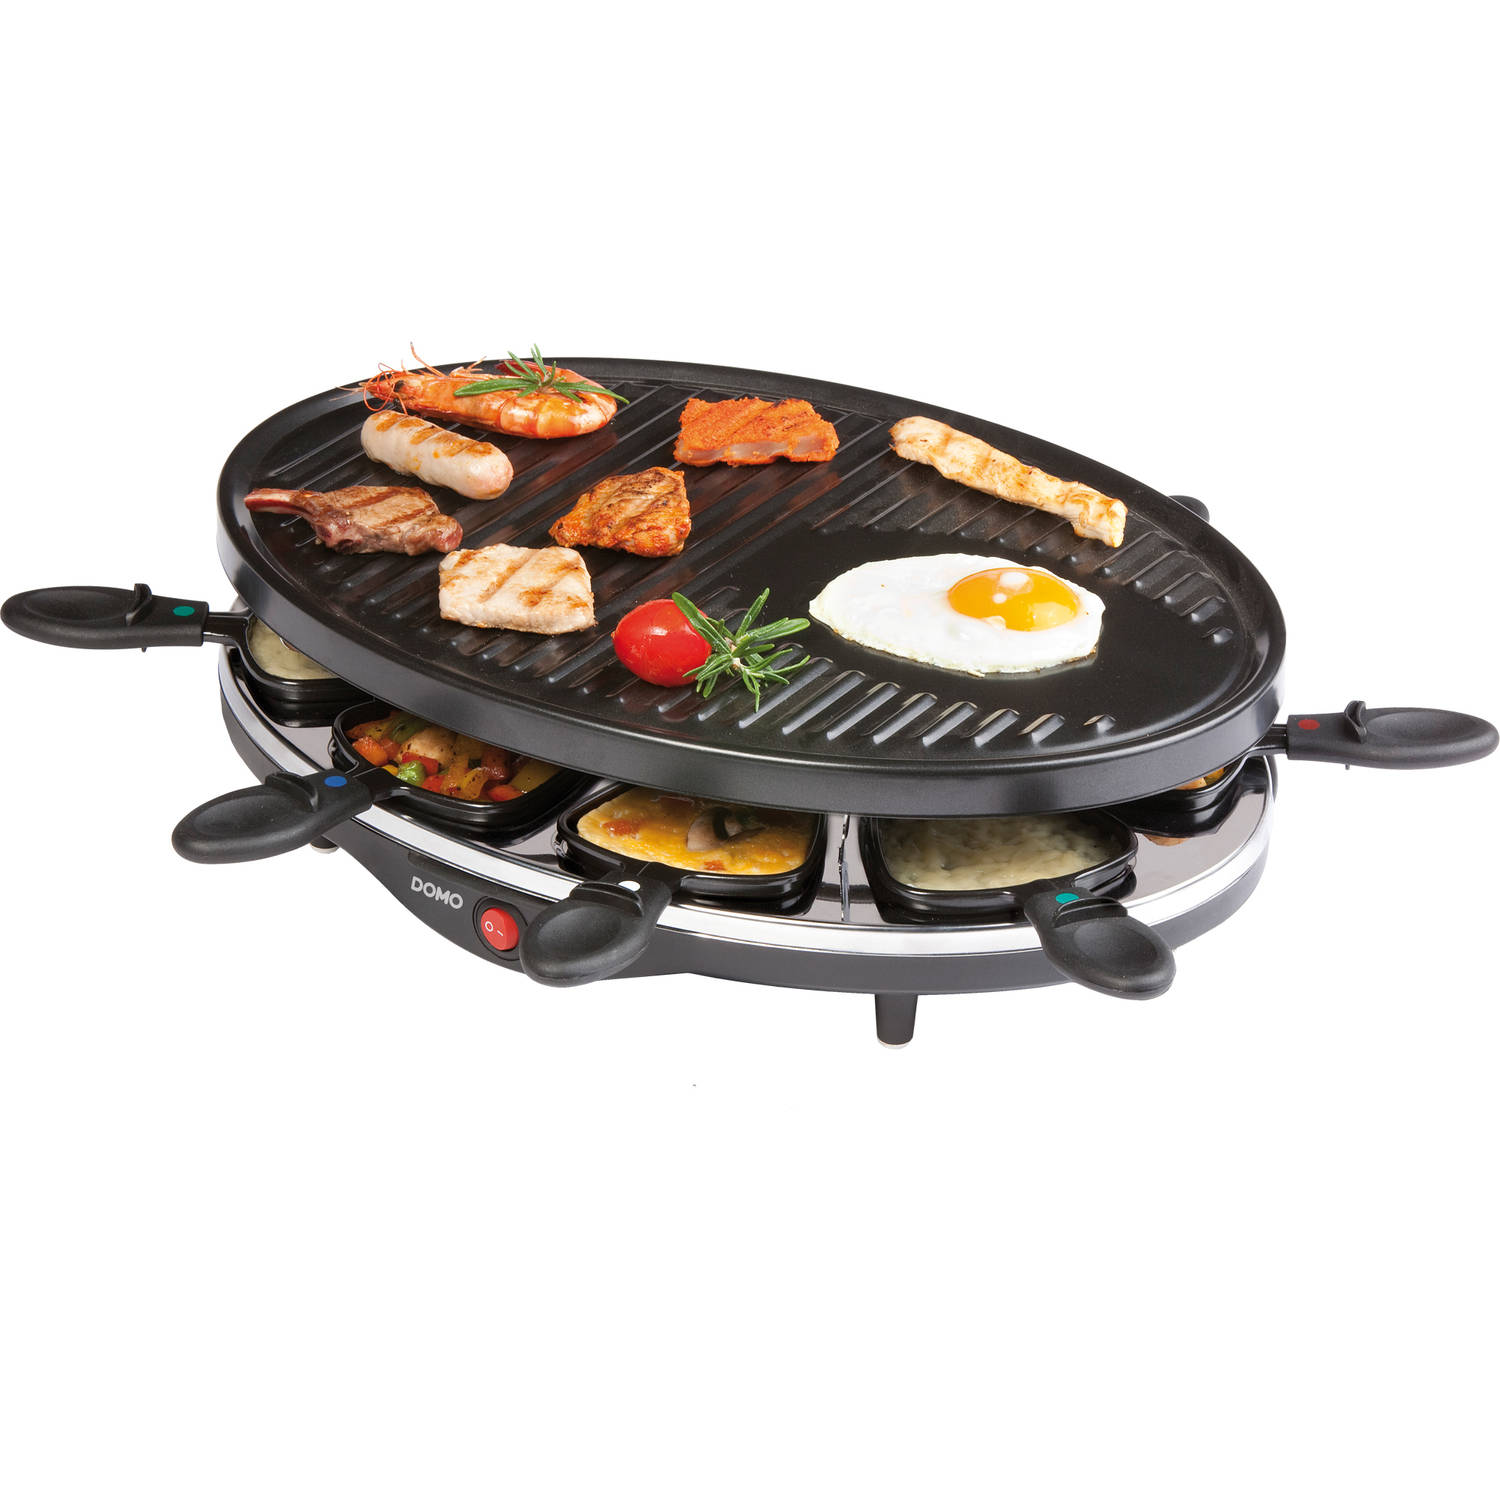 Domo raclette-grill DO9038G